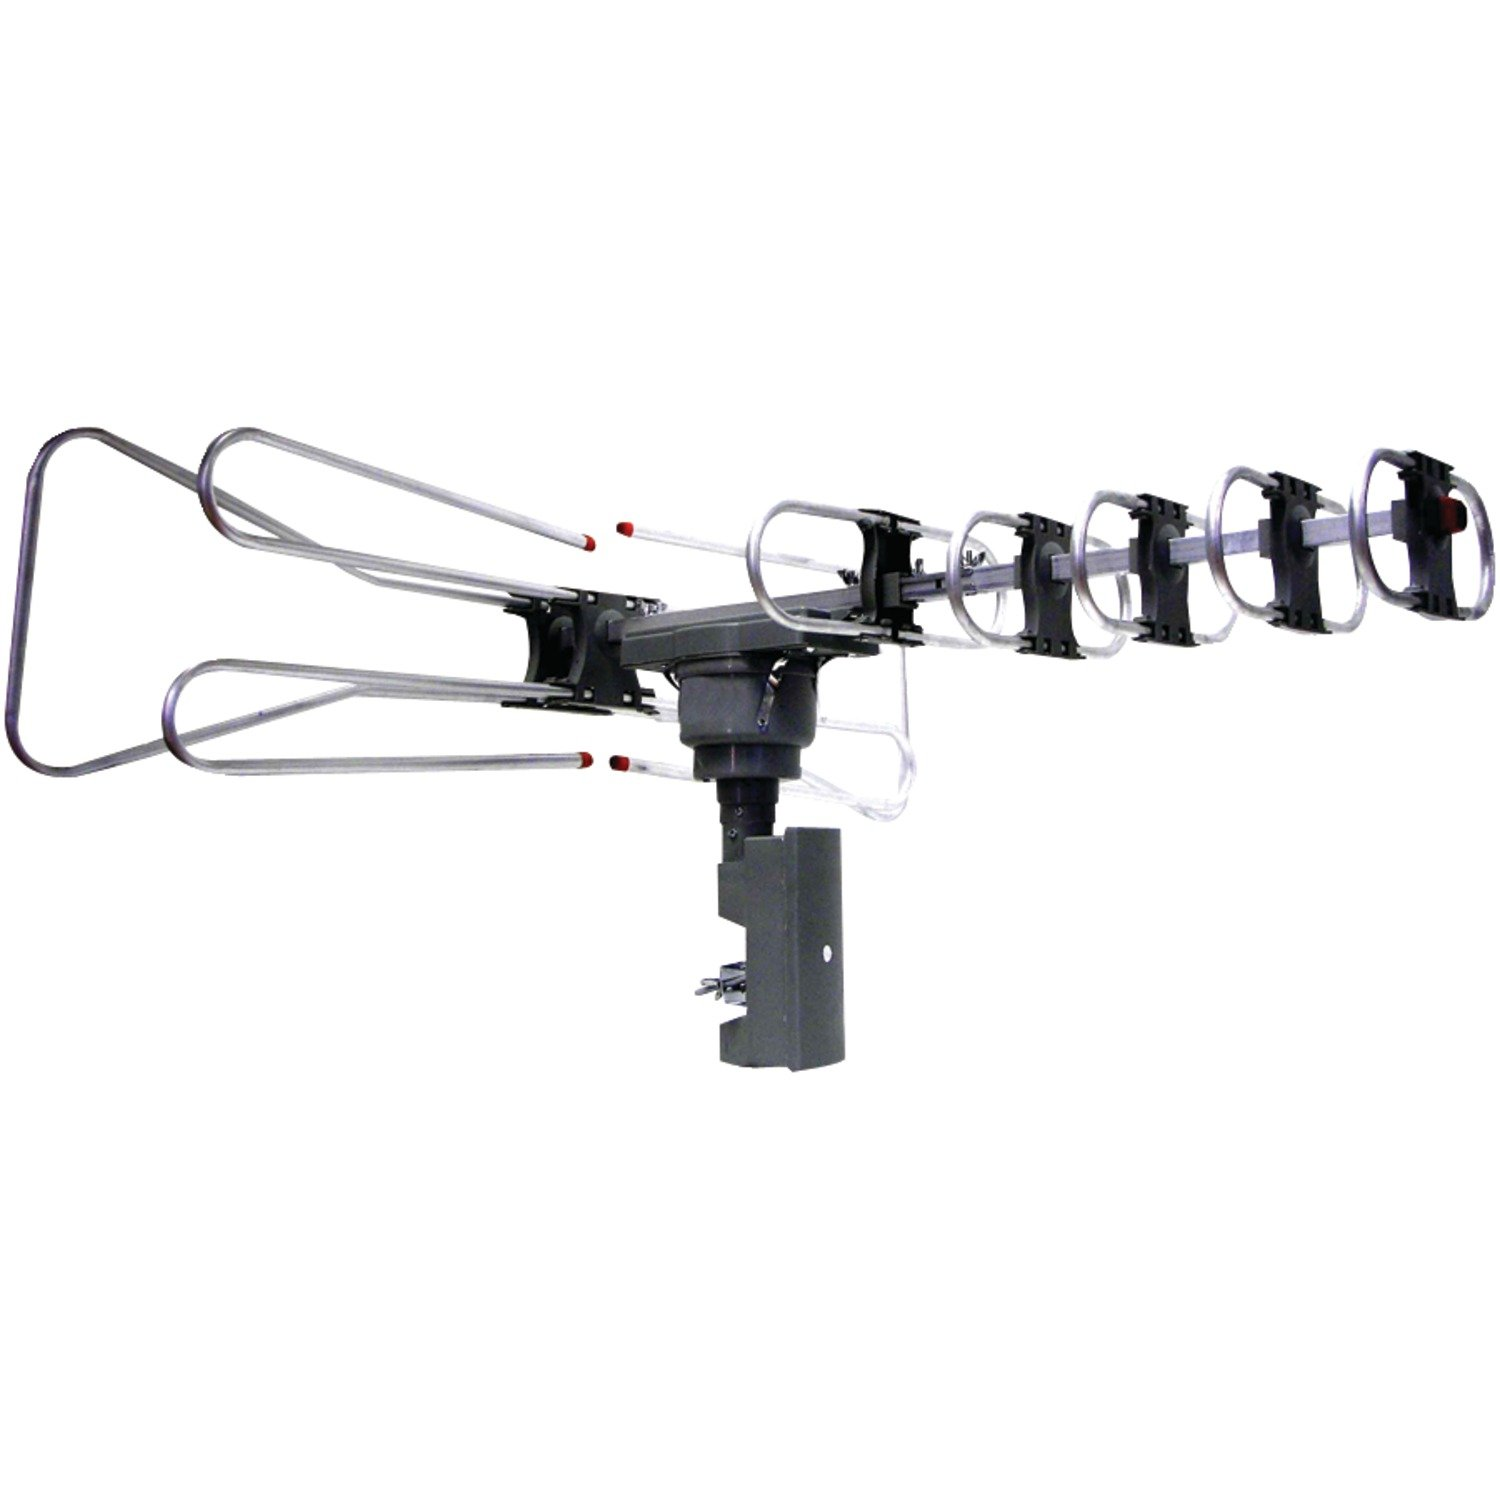 NAXA Electronics NAA-350 High Powered Amplified Motorized Outdoor Antenna Suitable For HDTV and ATSC Digital Television